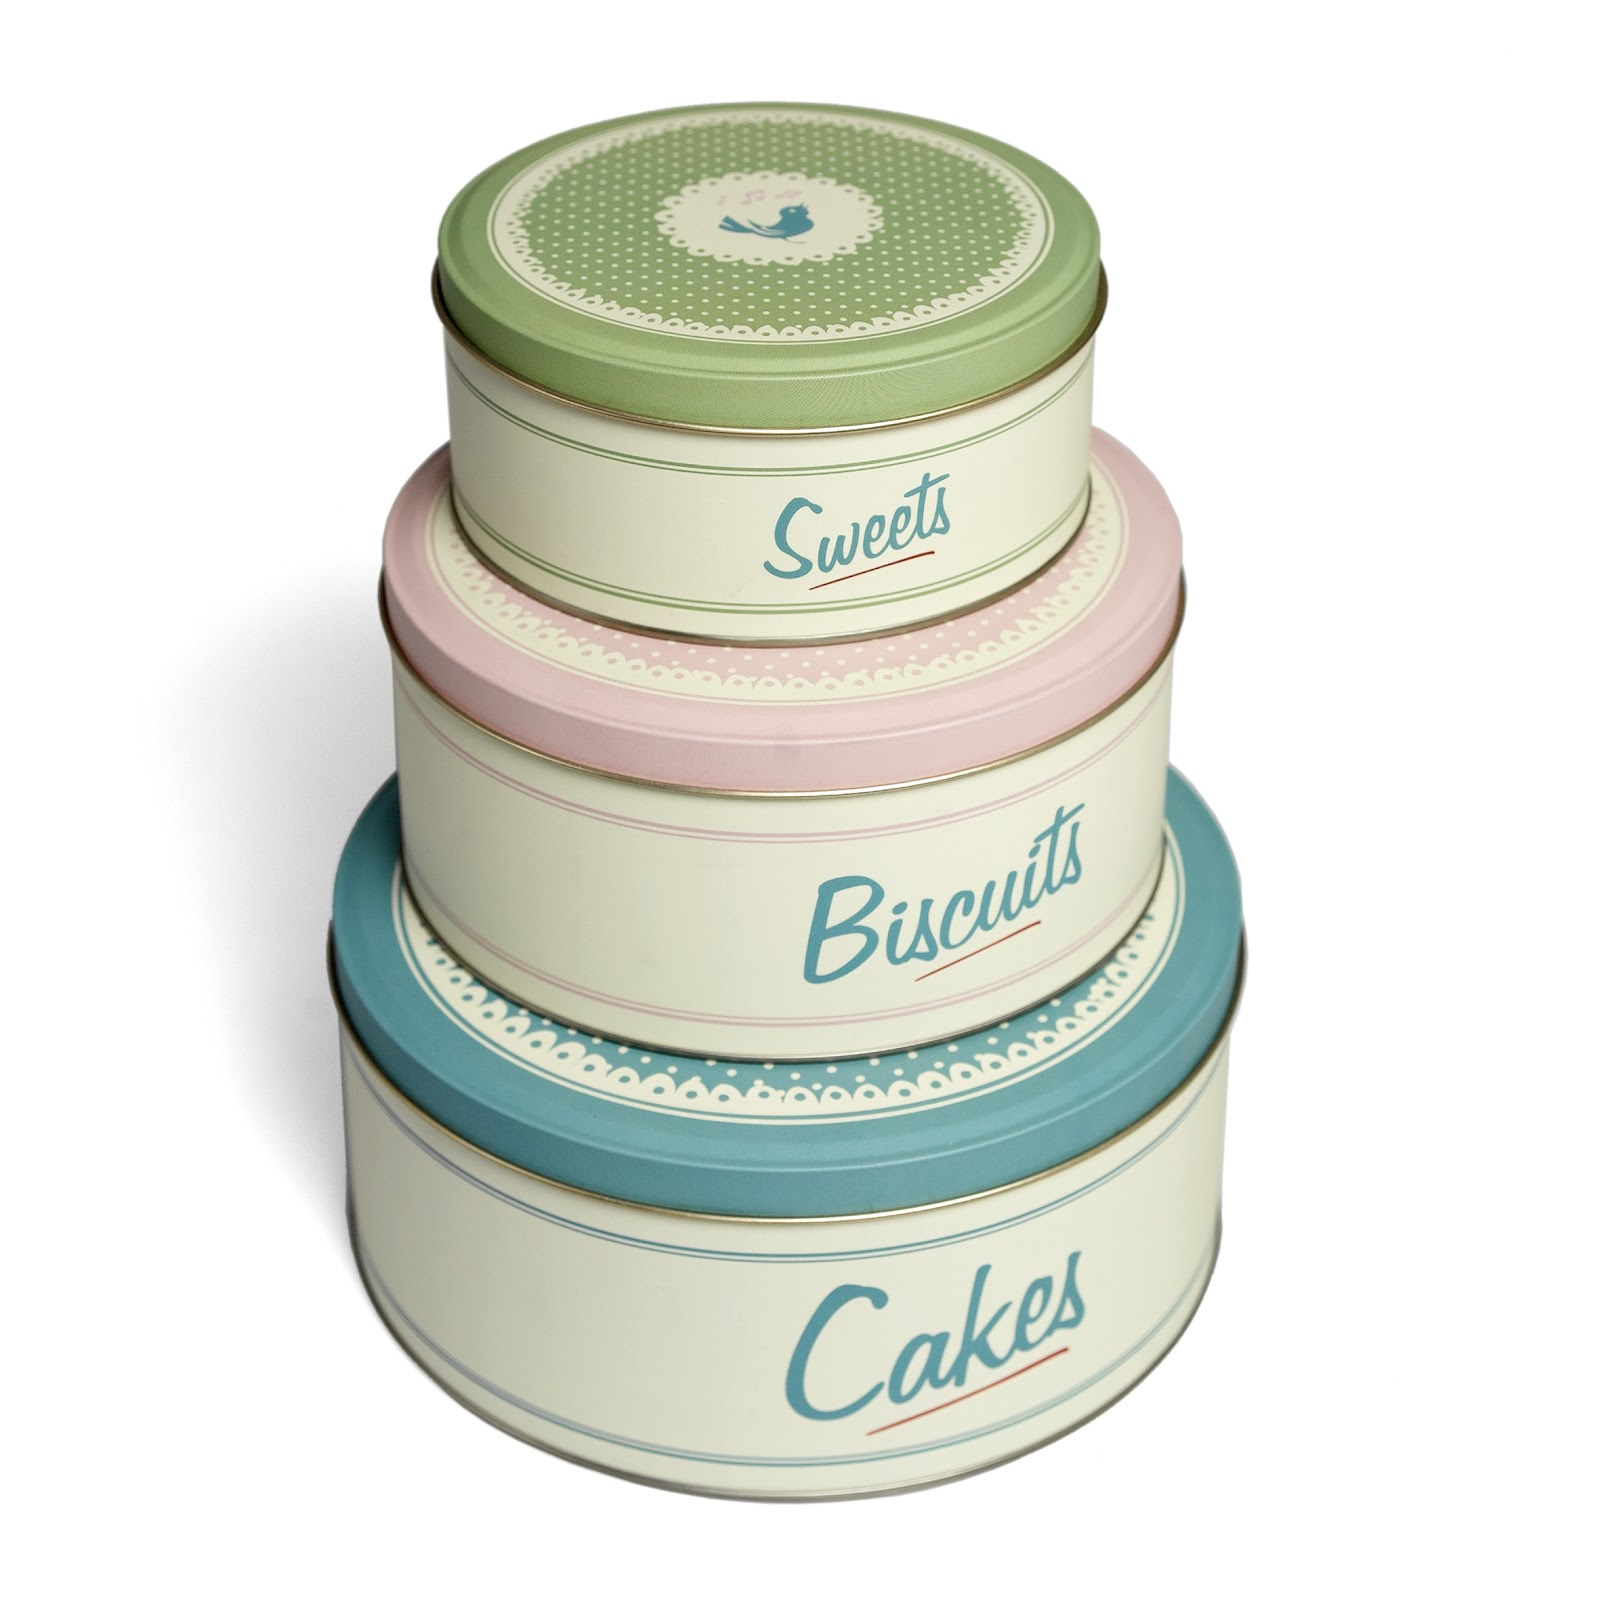 Something A Little More Vibrant For The Kitchen Yet Still Retaining The  Retro Look, The Argos Living Cake Tins (£9.99) Are Another Really Cute Set.